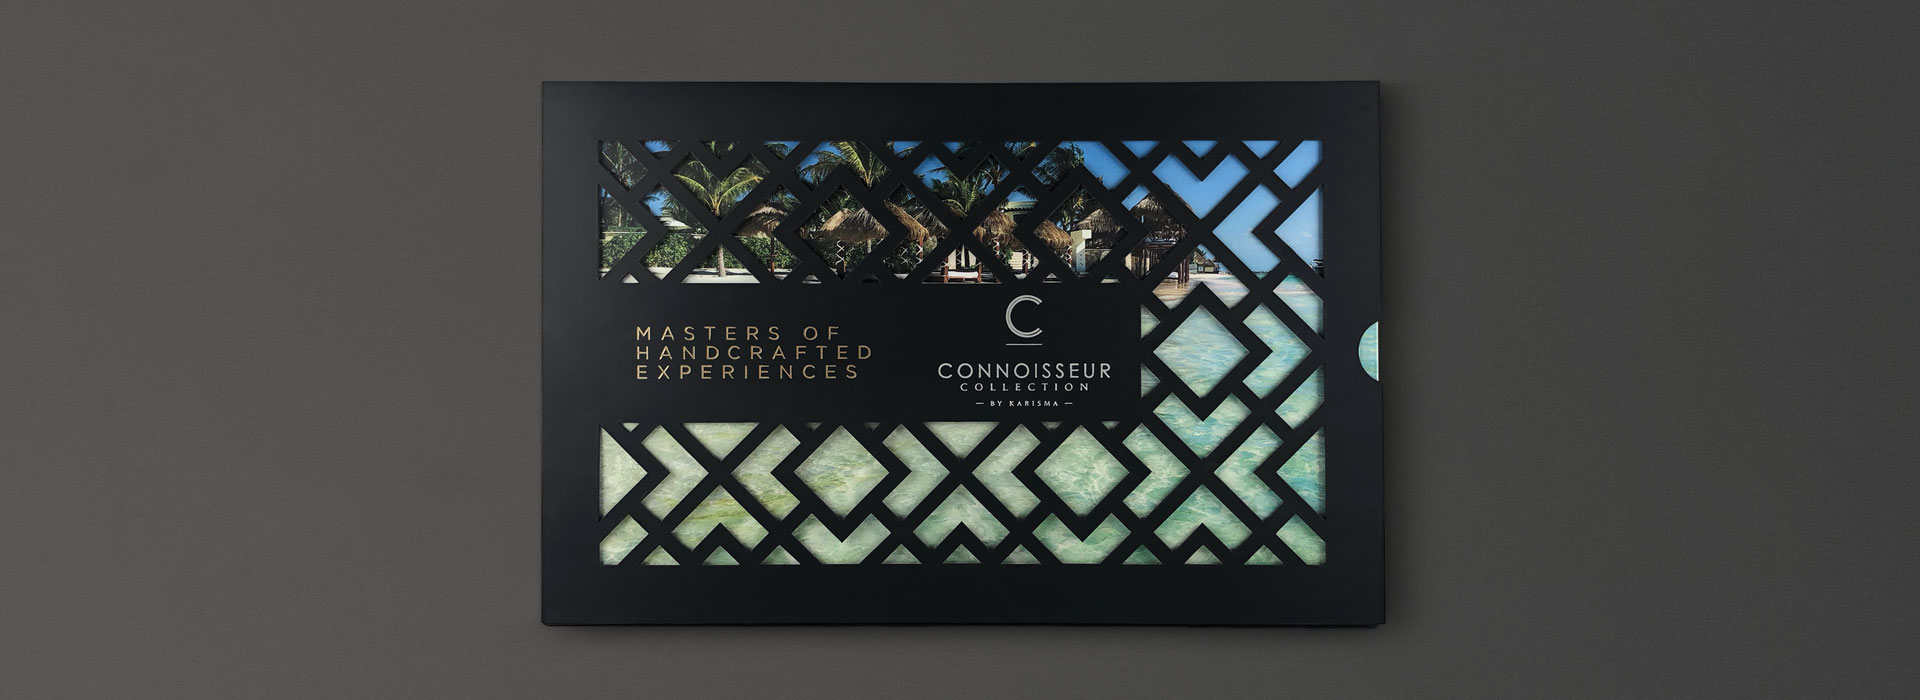 Karisma Connoisseur Collection Brochure Design from Starmark International